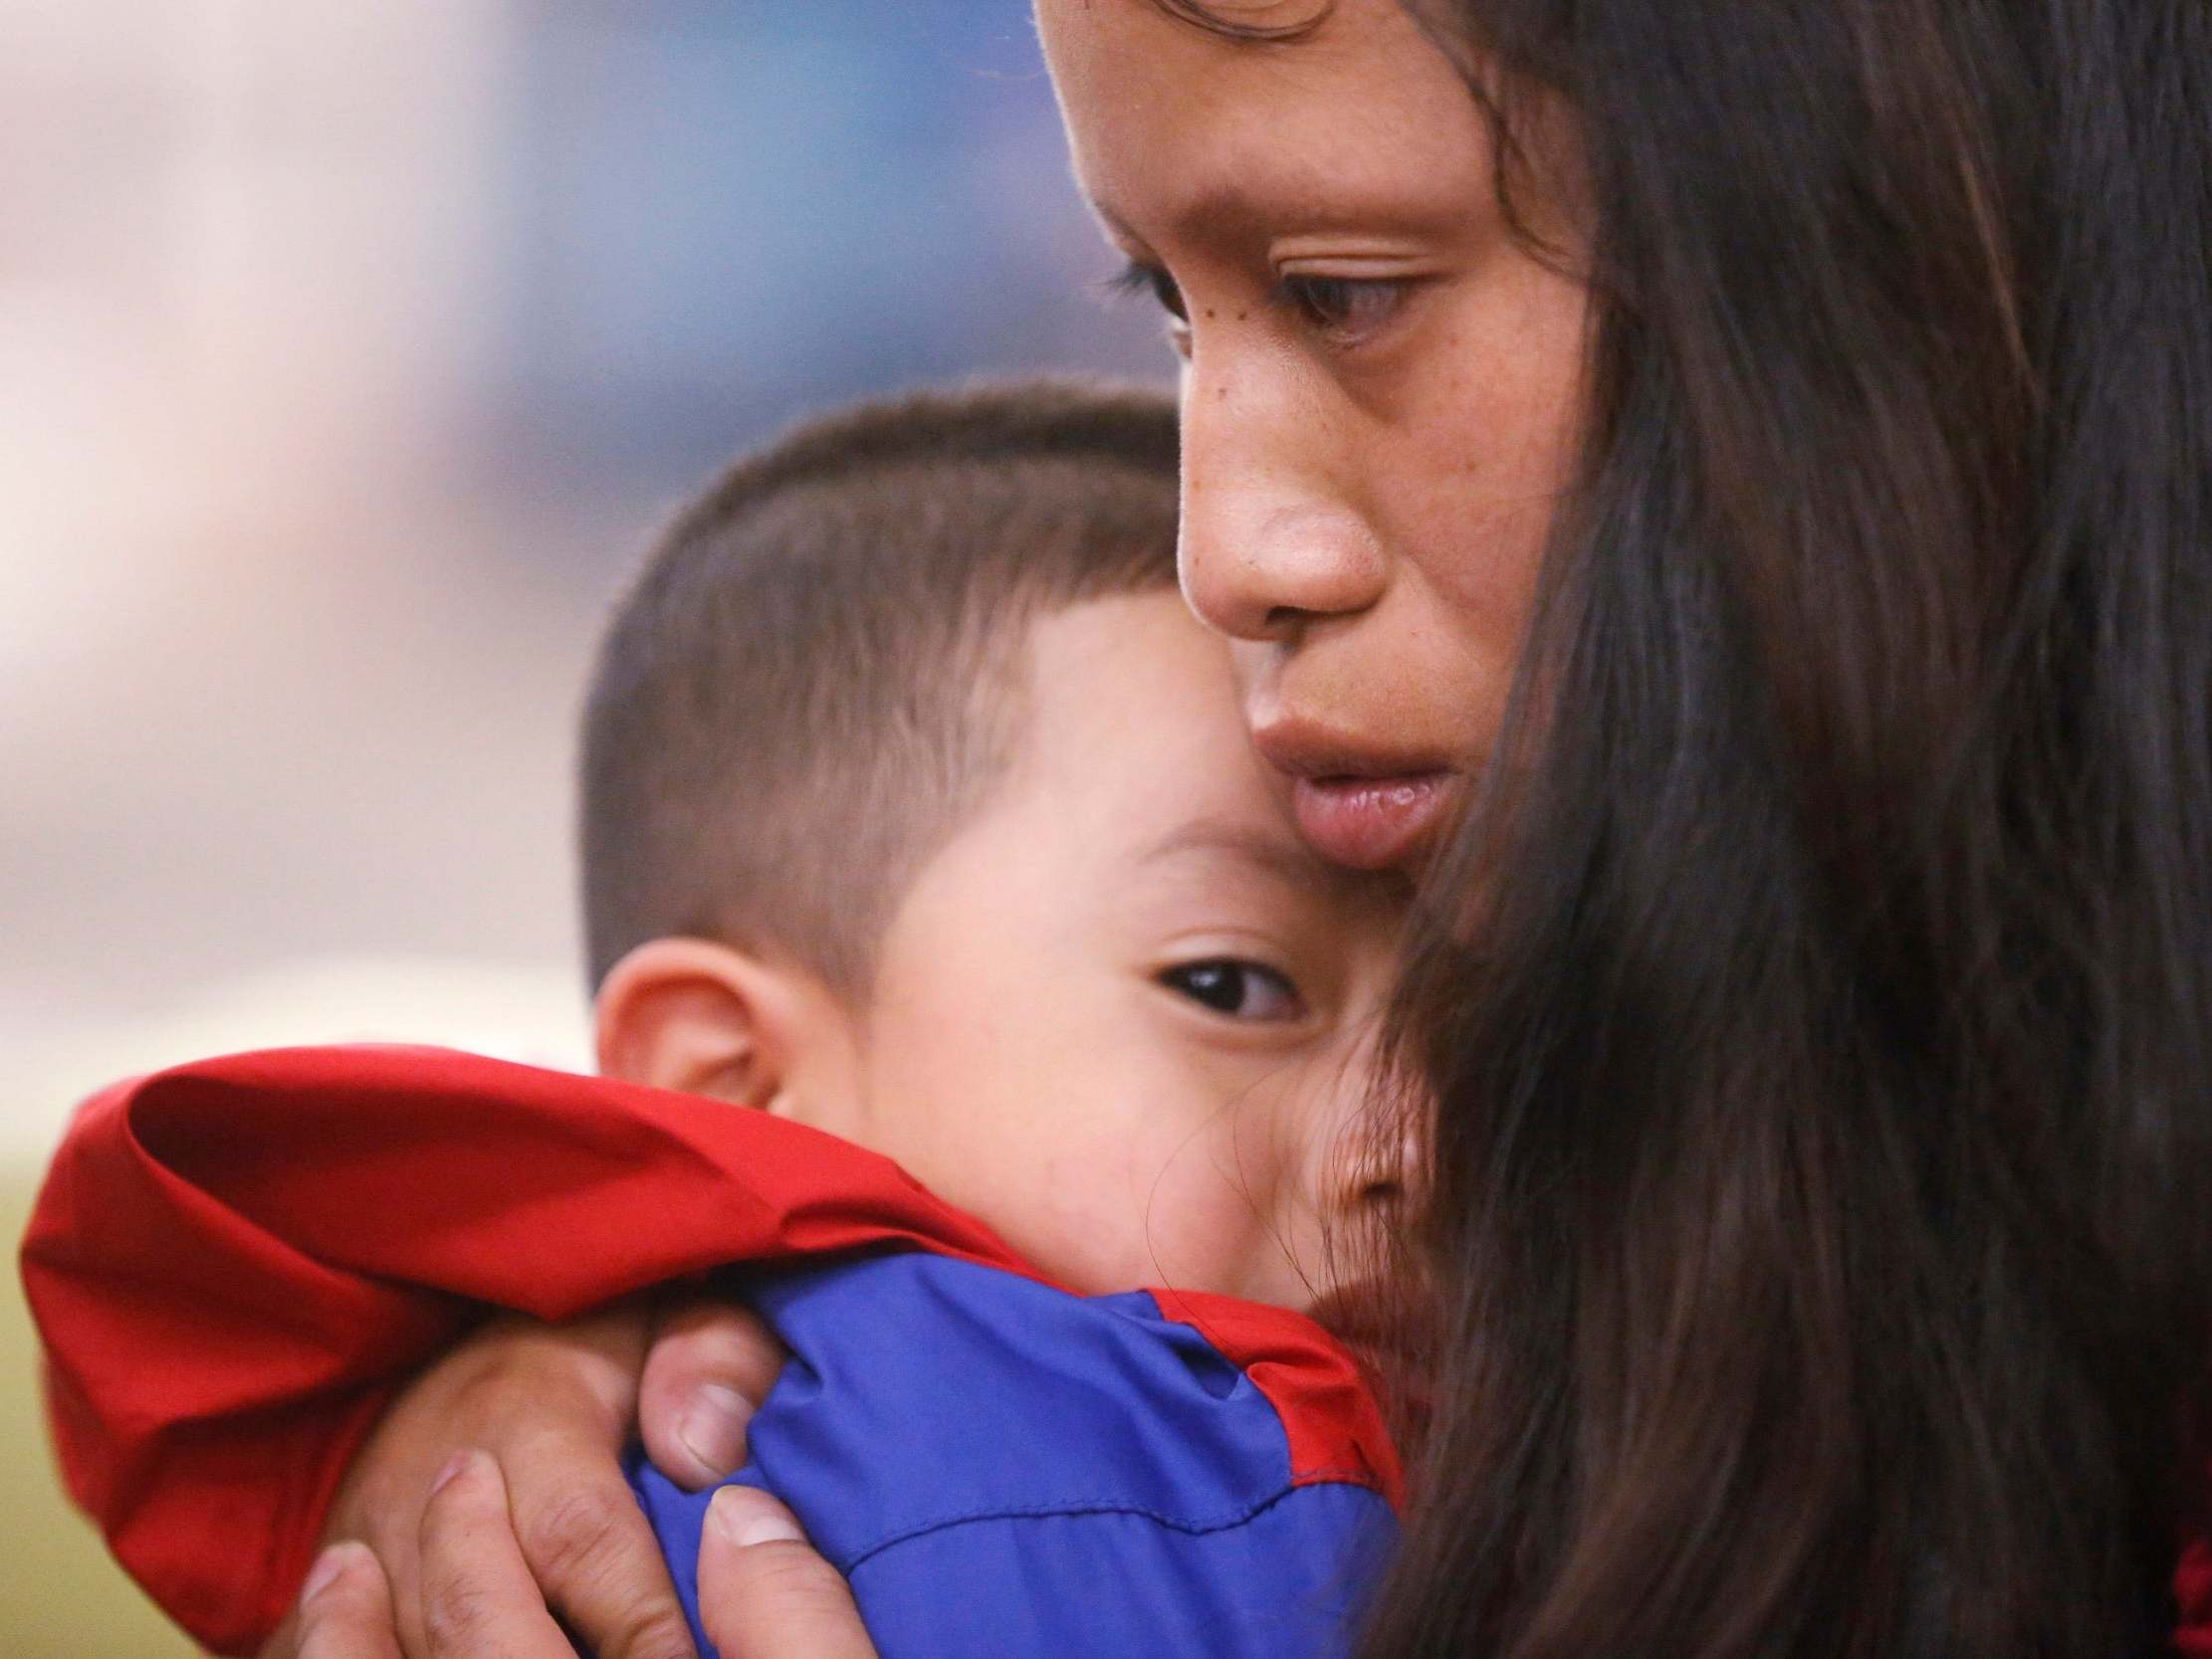 1,500 more migrant children separated from parents at US border than previously admitted, ACLU says